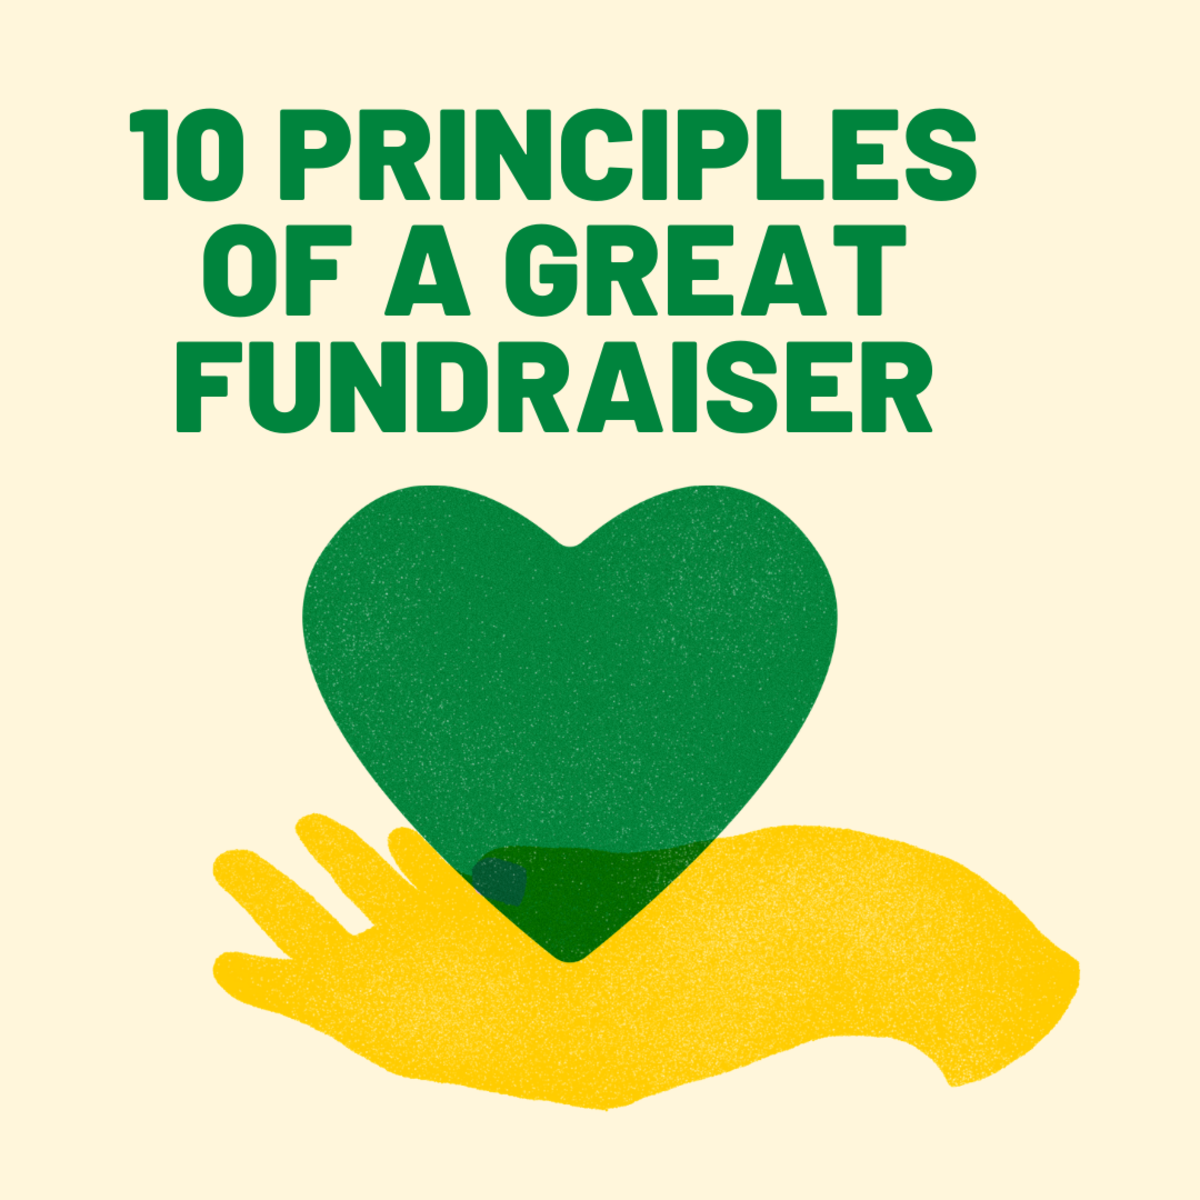 What makes a good fundraiser?